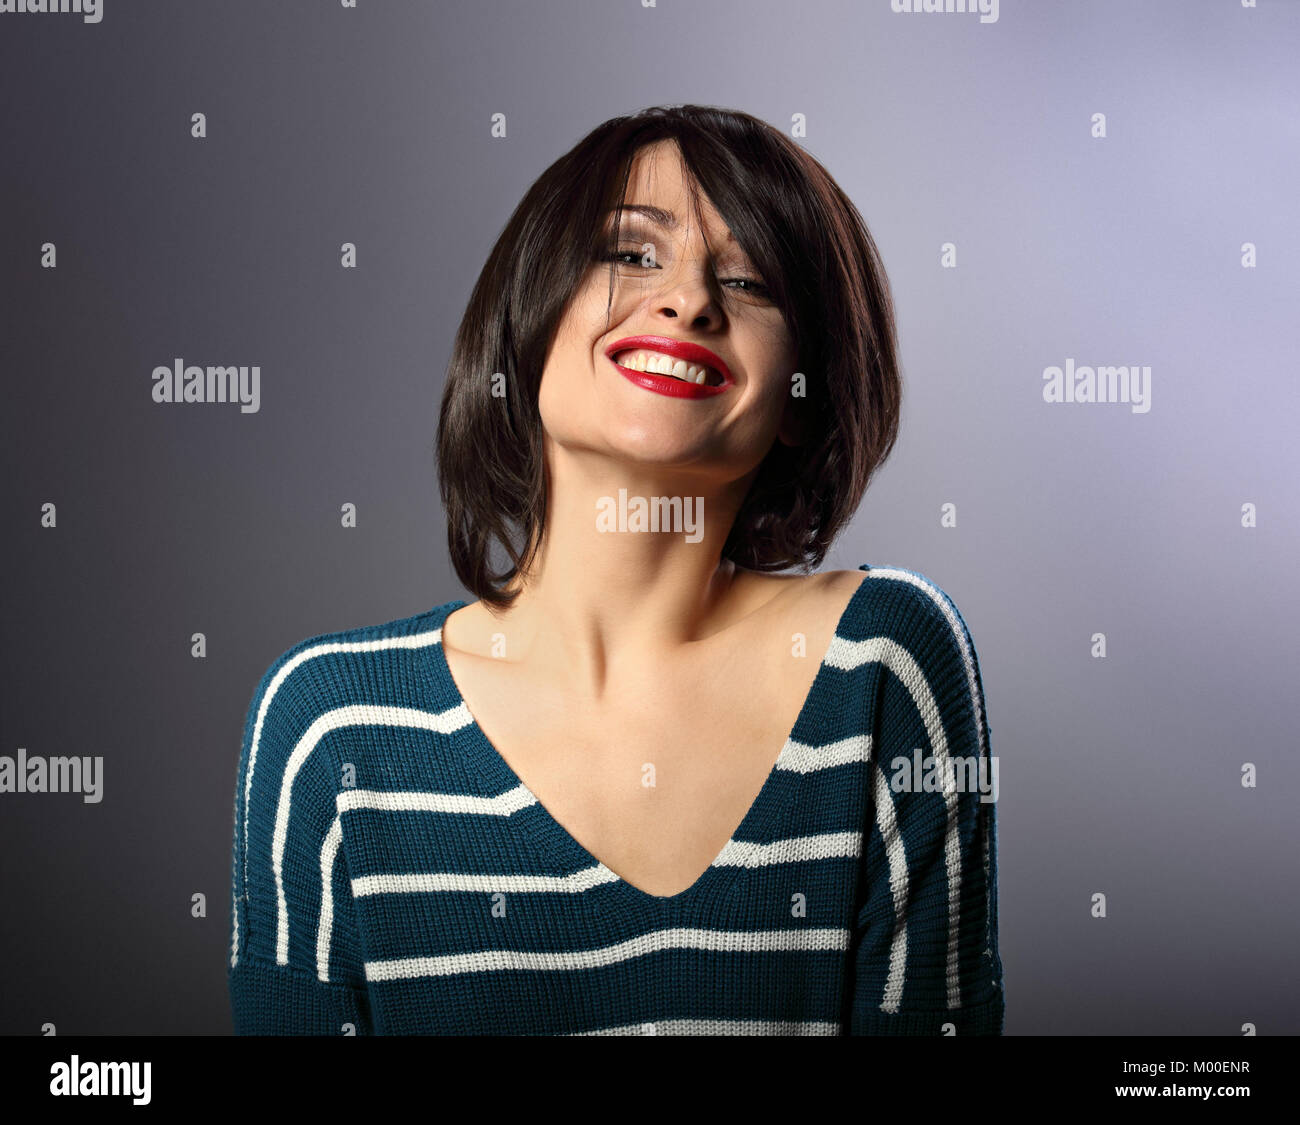 Happy loudly laughing with wide smile young woman with short hair in fashion sweater. portrait on grey background - Stock Image